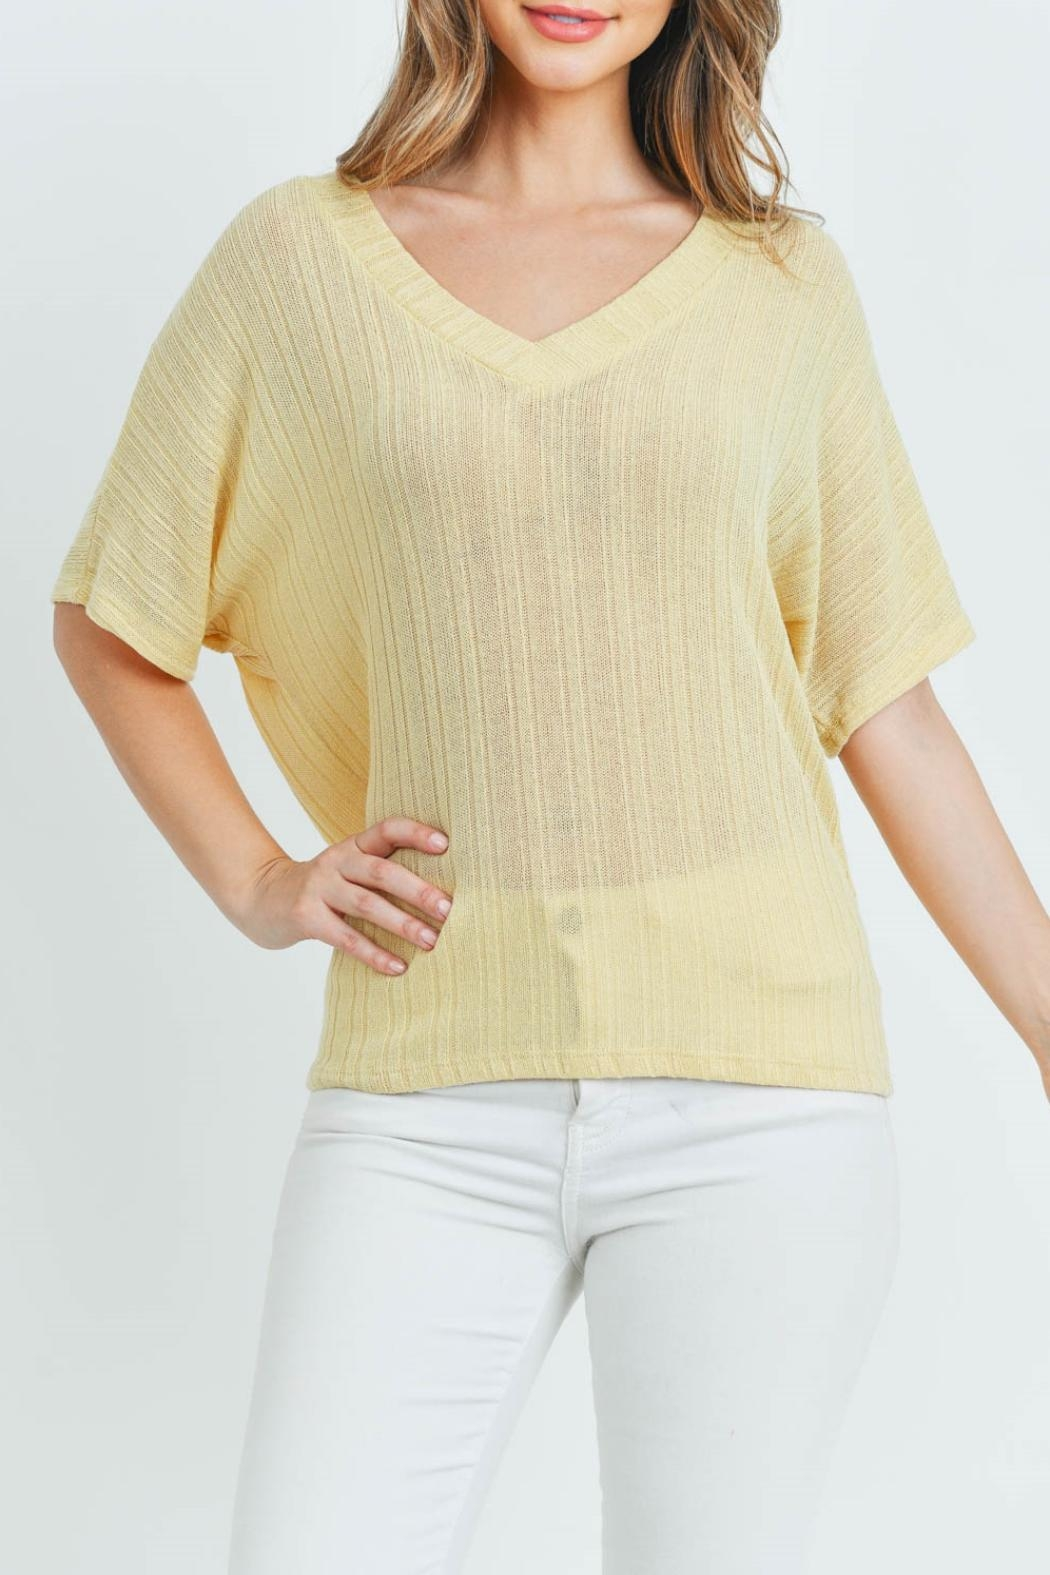 Ginger G Yellow Knit Top - Front Full Image